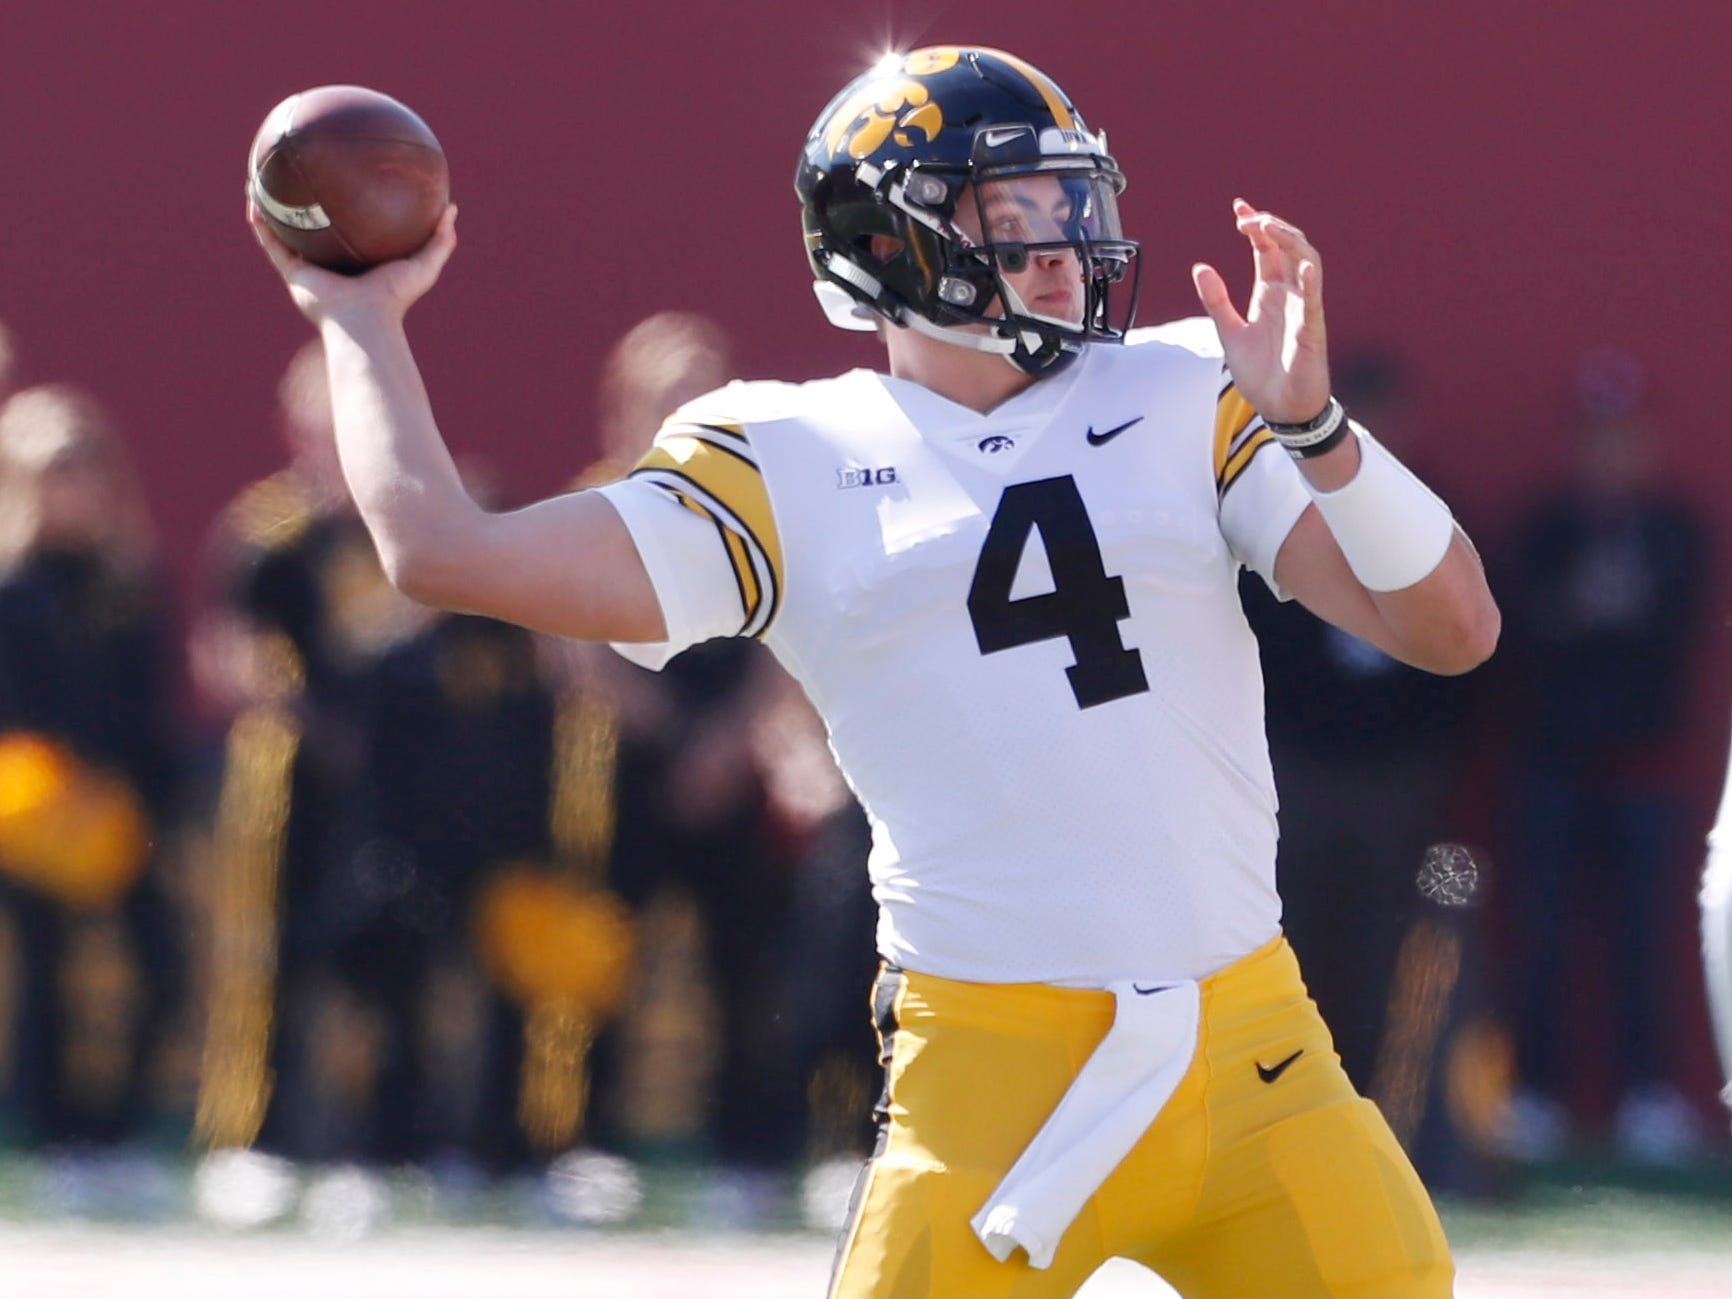 Iowa Hawkeyes quarterback Nate Stanley (4) throws a pass against the Indiana Hoosiers during the first quarter at Memorial Stadium .